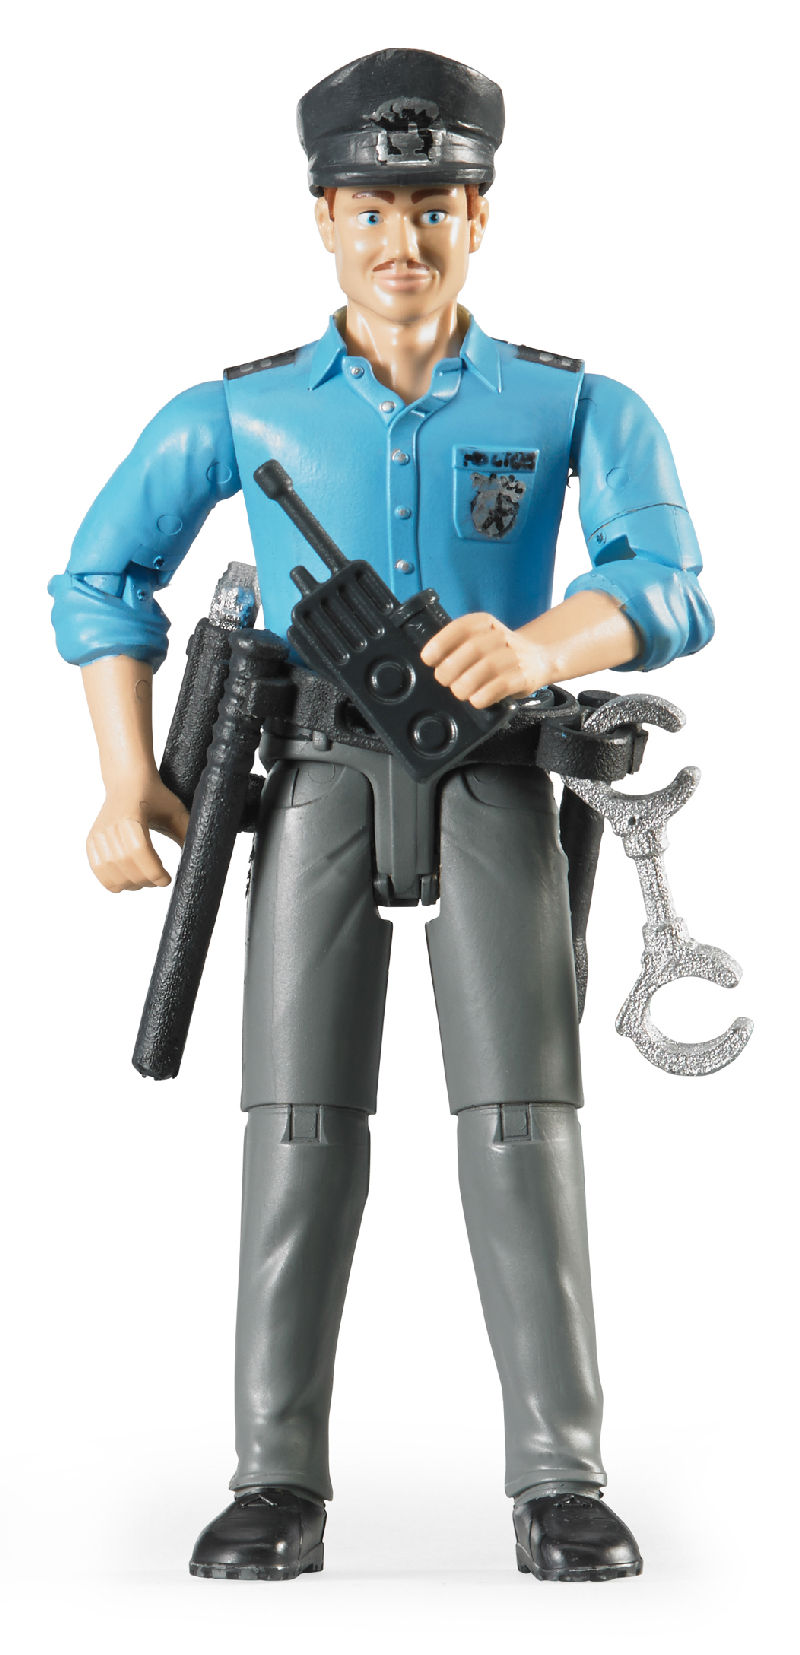 60050 - Bruder Toys Policeman with Light Colored Skin and Accessories